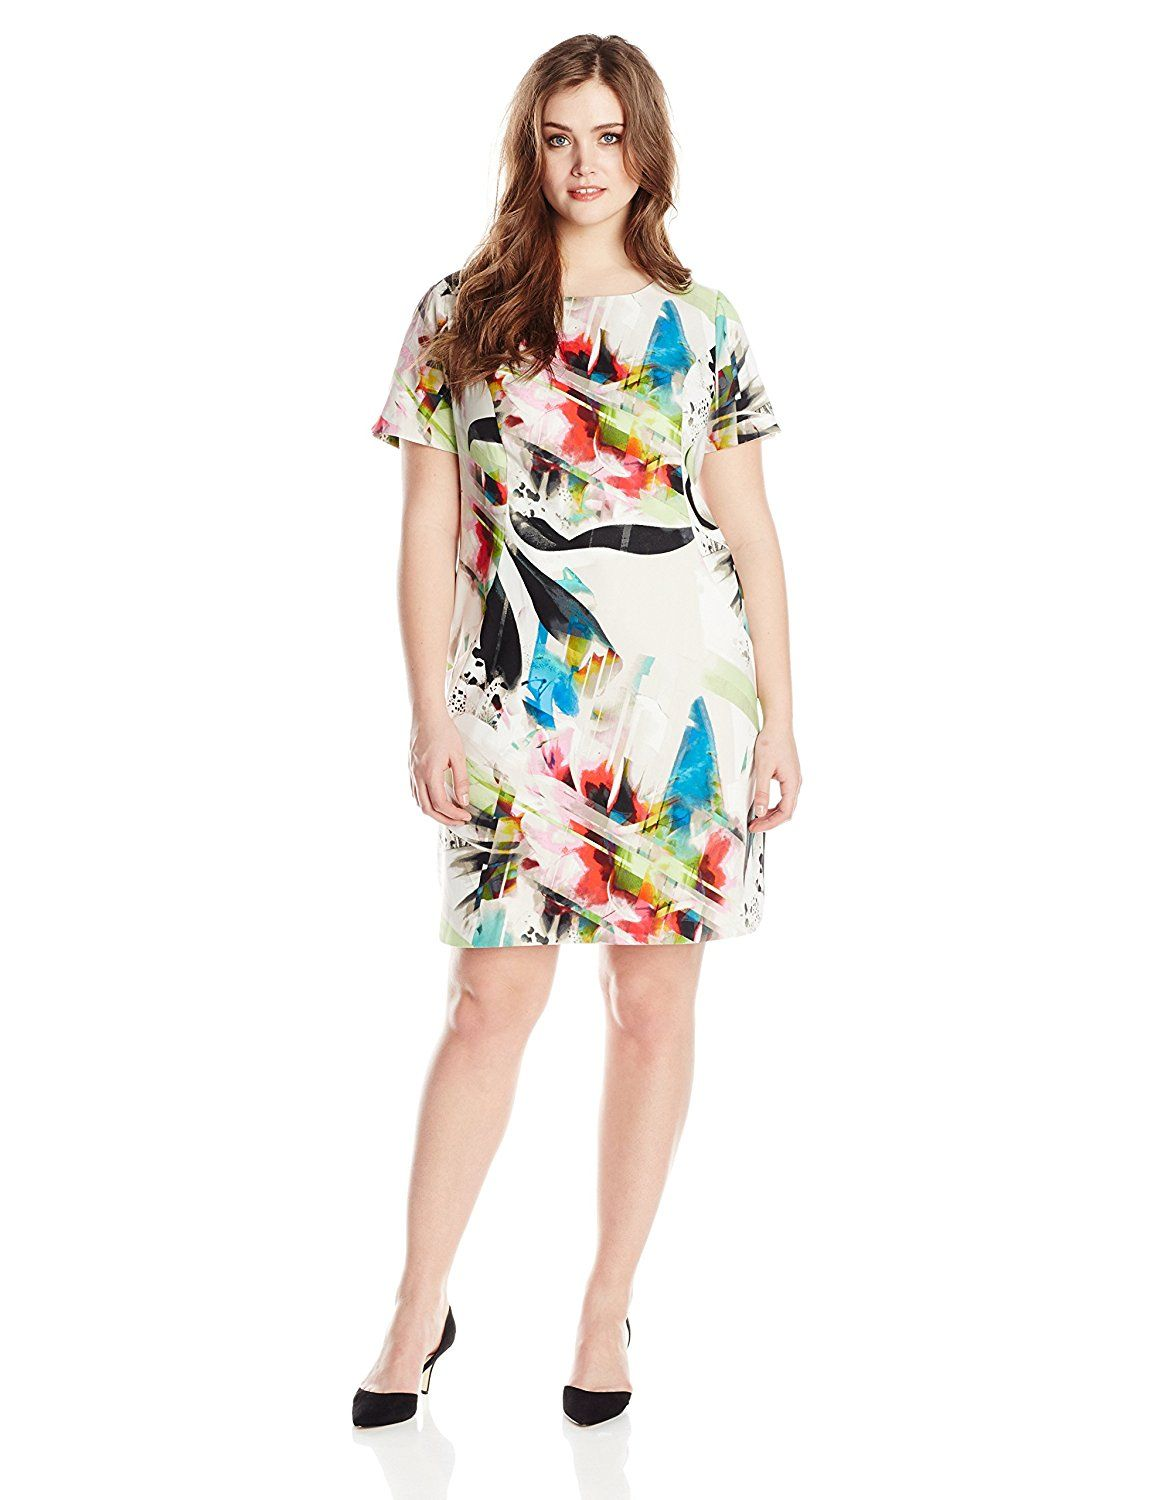 d5843161a94 AGB Women s Plus-Size Short Sleeve Brushstroke Shift Dress with Scoop Neck      Special product just for you. See it now!   Women s dresses